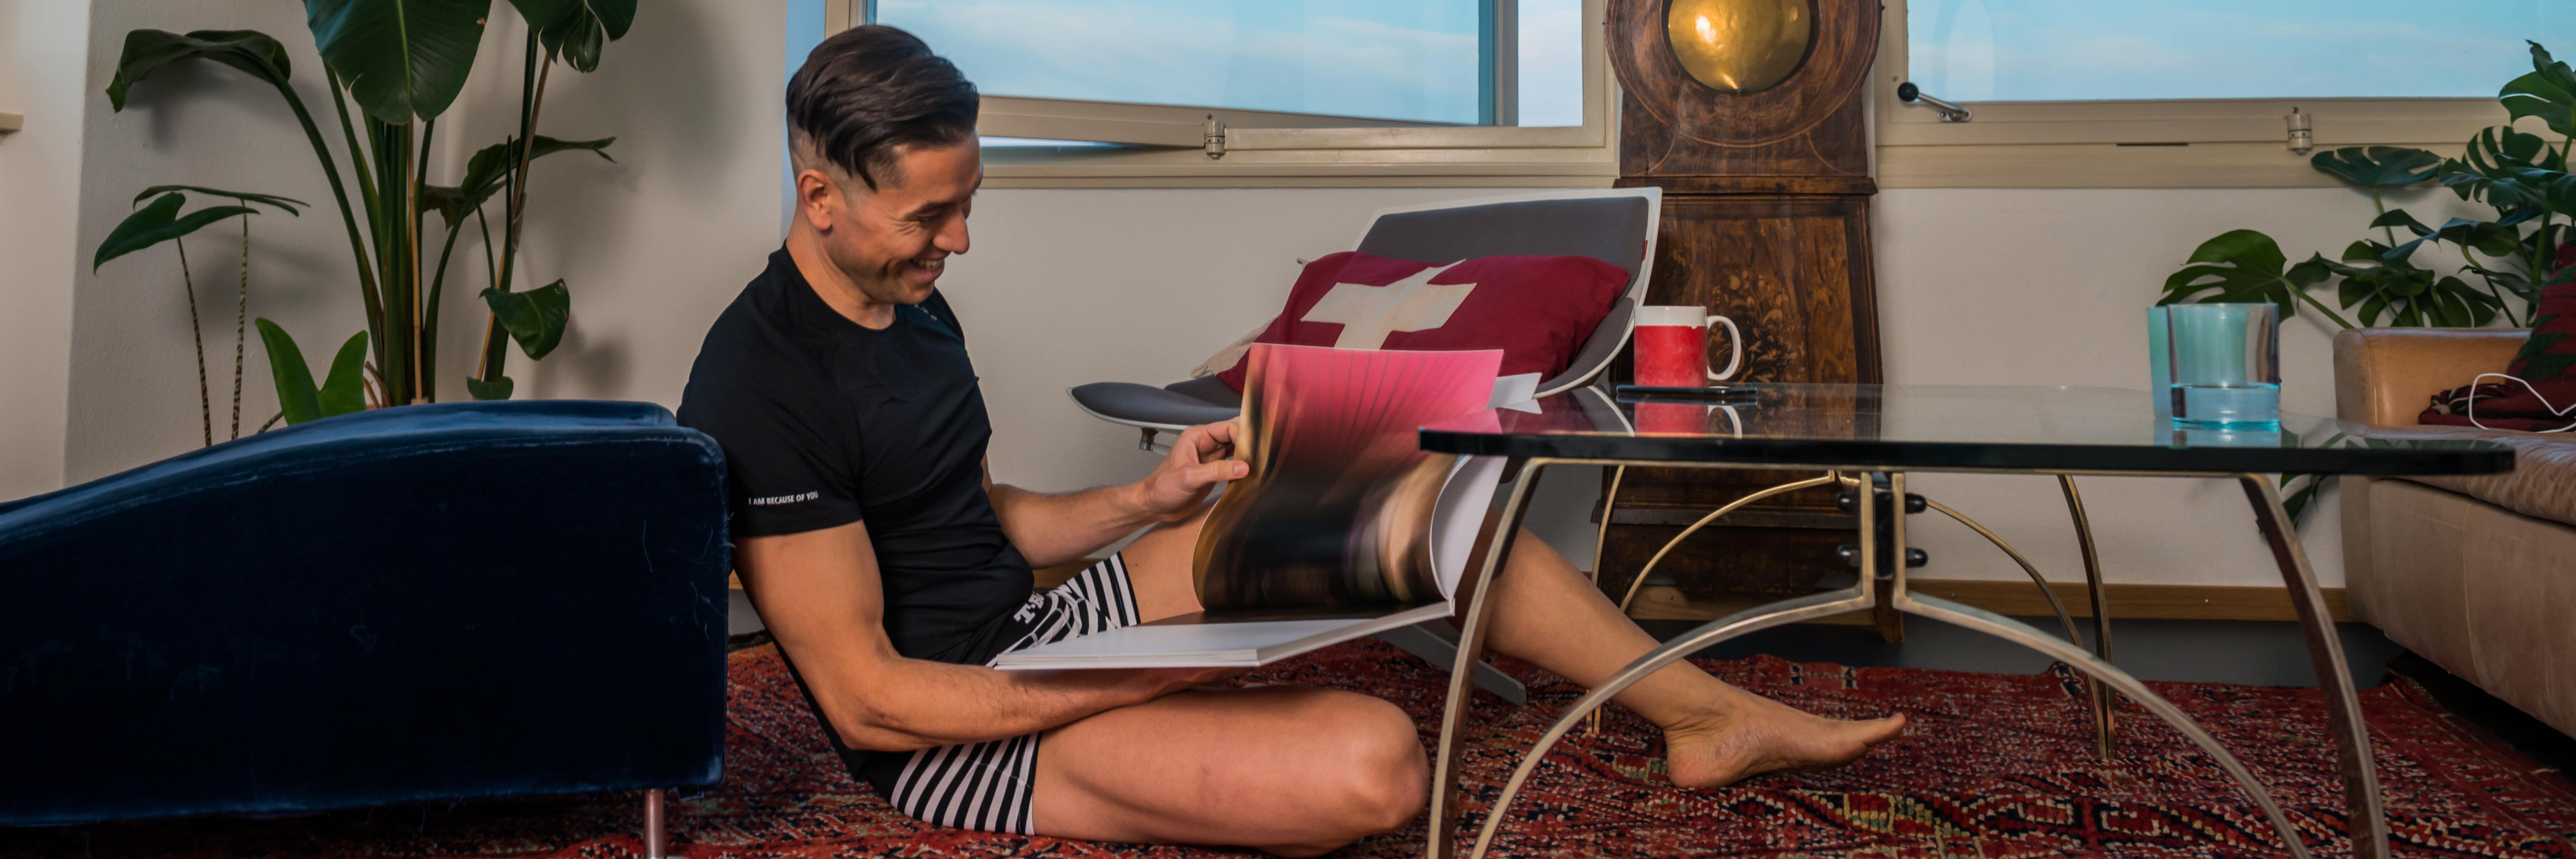 Men's Underwear Brand TBô Pioneers Community-Led Direct-By-Consumer Business Model